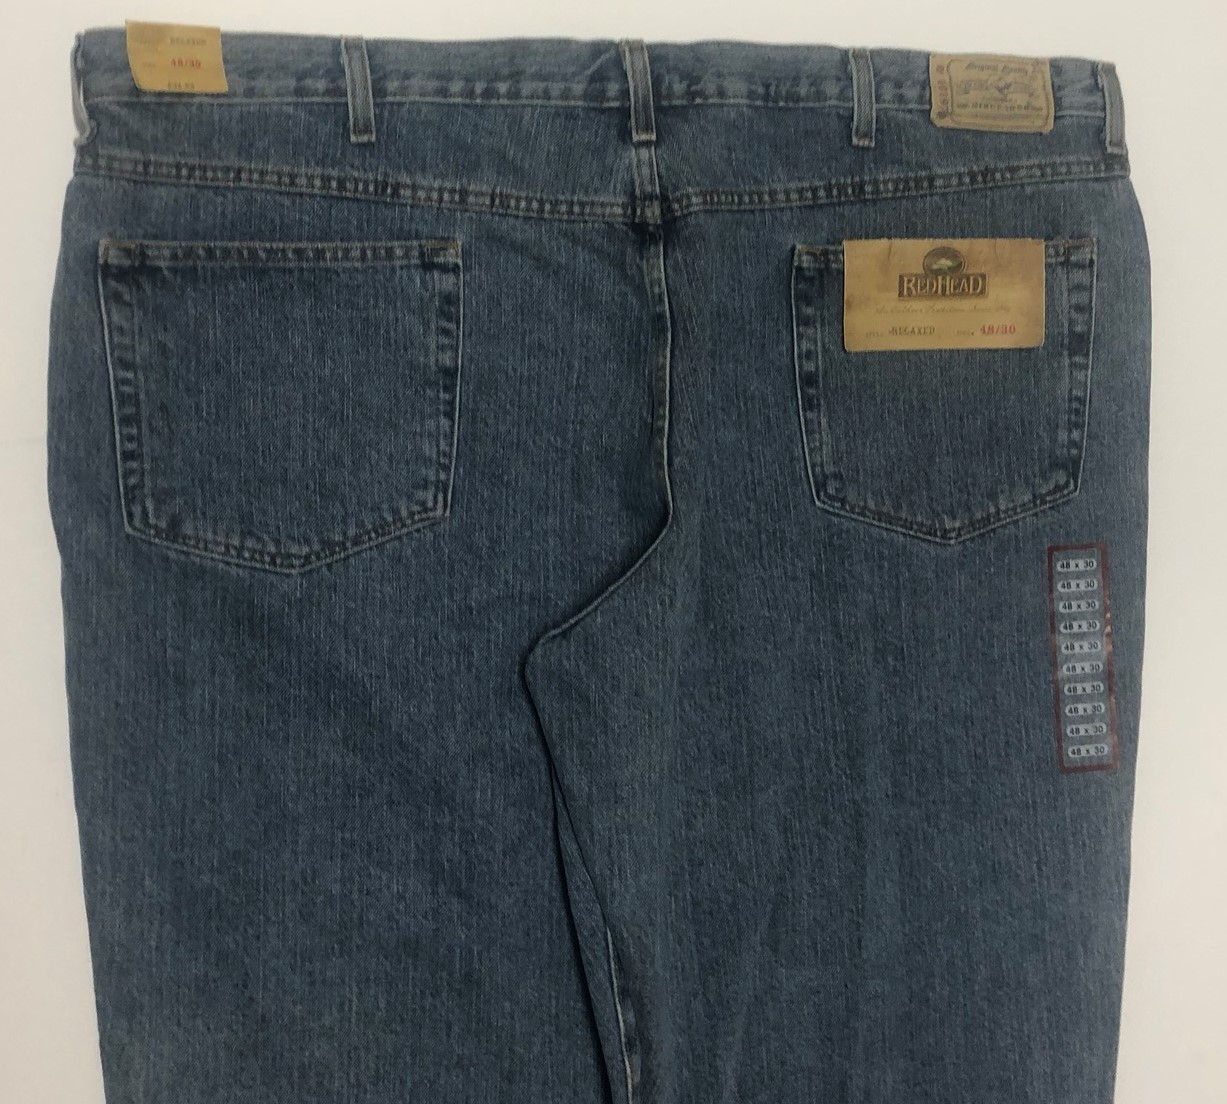 Red Head Relaxed Men's Blue Jeans Sz 48/30 Medium Stone Wash image 6